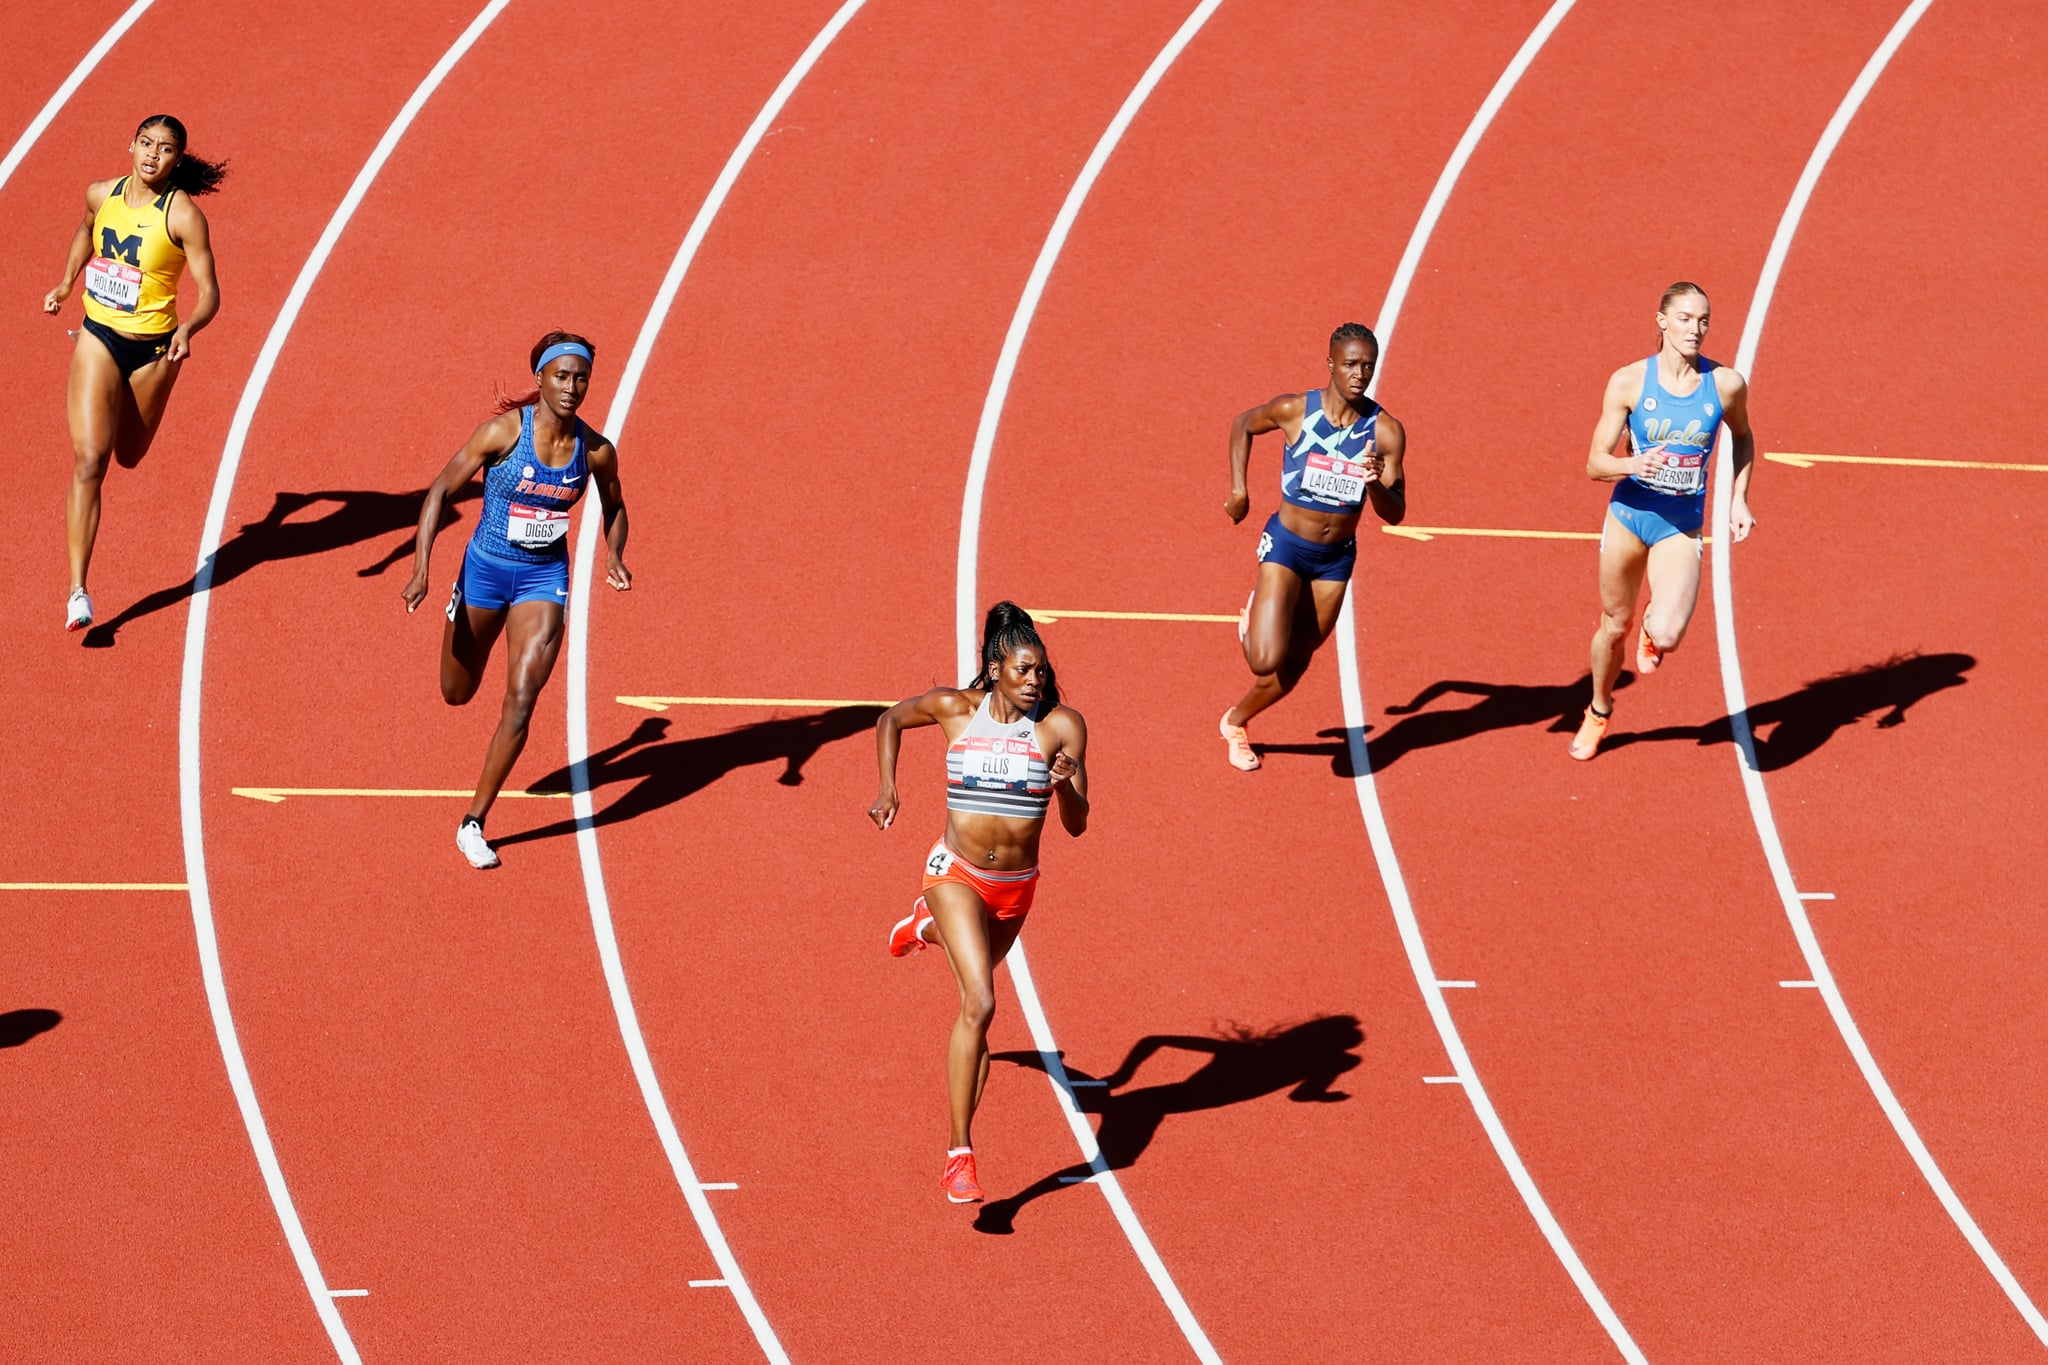 EUGENE, OREGON - JUNE 18: Kendall Ellis competes in the first round of the Women's 400 Meter during day one of the 2020 U.S. Olympic Track & Field Team Trials at Hayward Field on June 18, 2021 in Eugene, Oregon. (Photo by Steph Chambers/Getty Images)